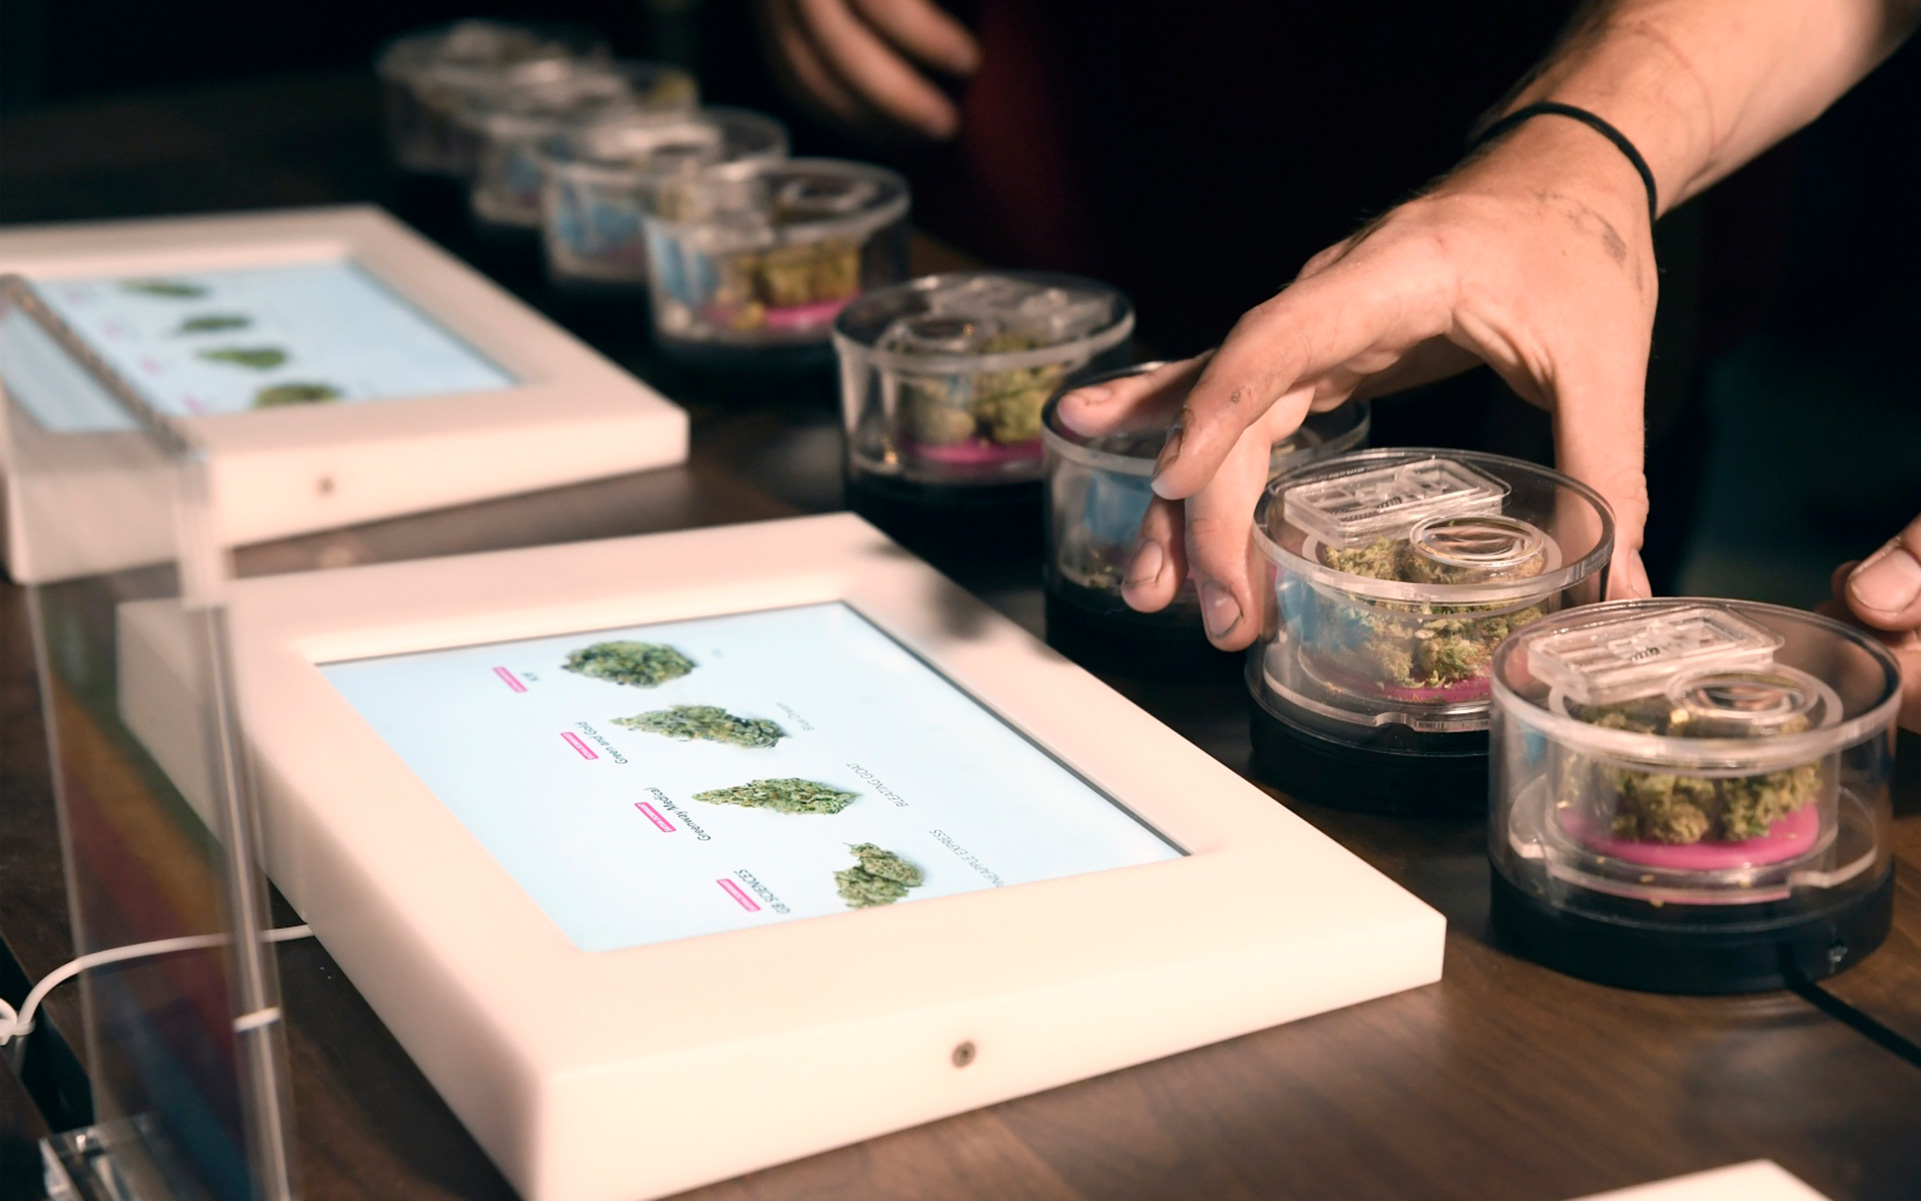 Touch-screen tablets and THC test scores greet L.A. pot shoppers. (Courtesy of Medmen)